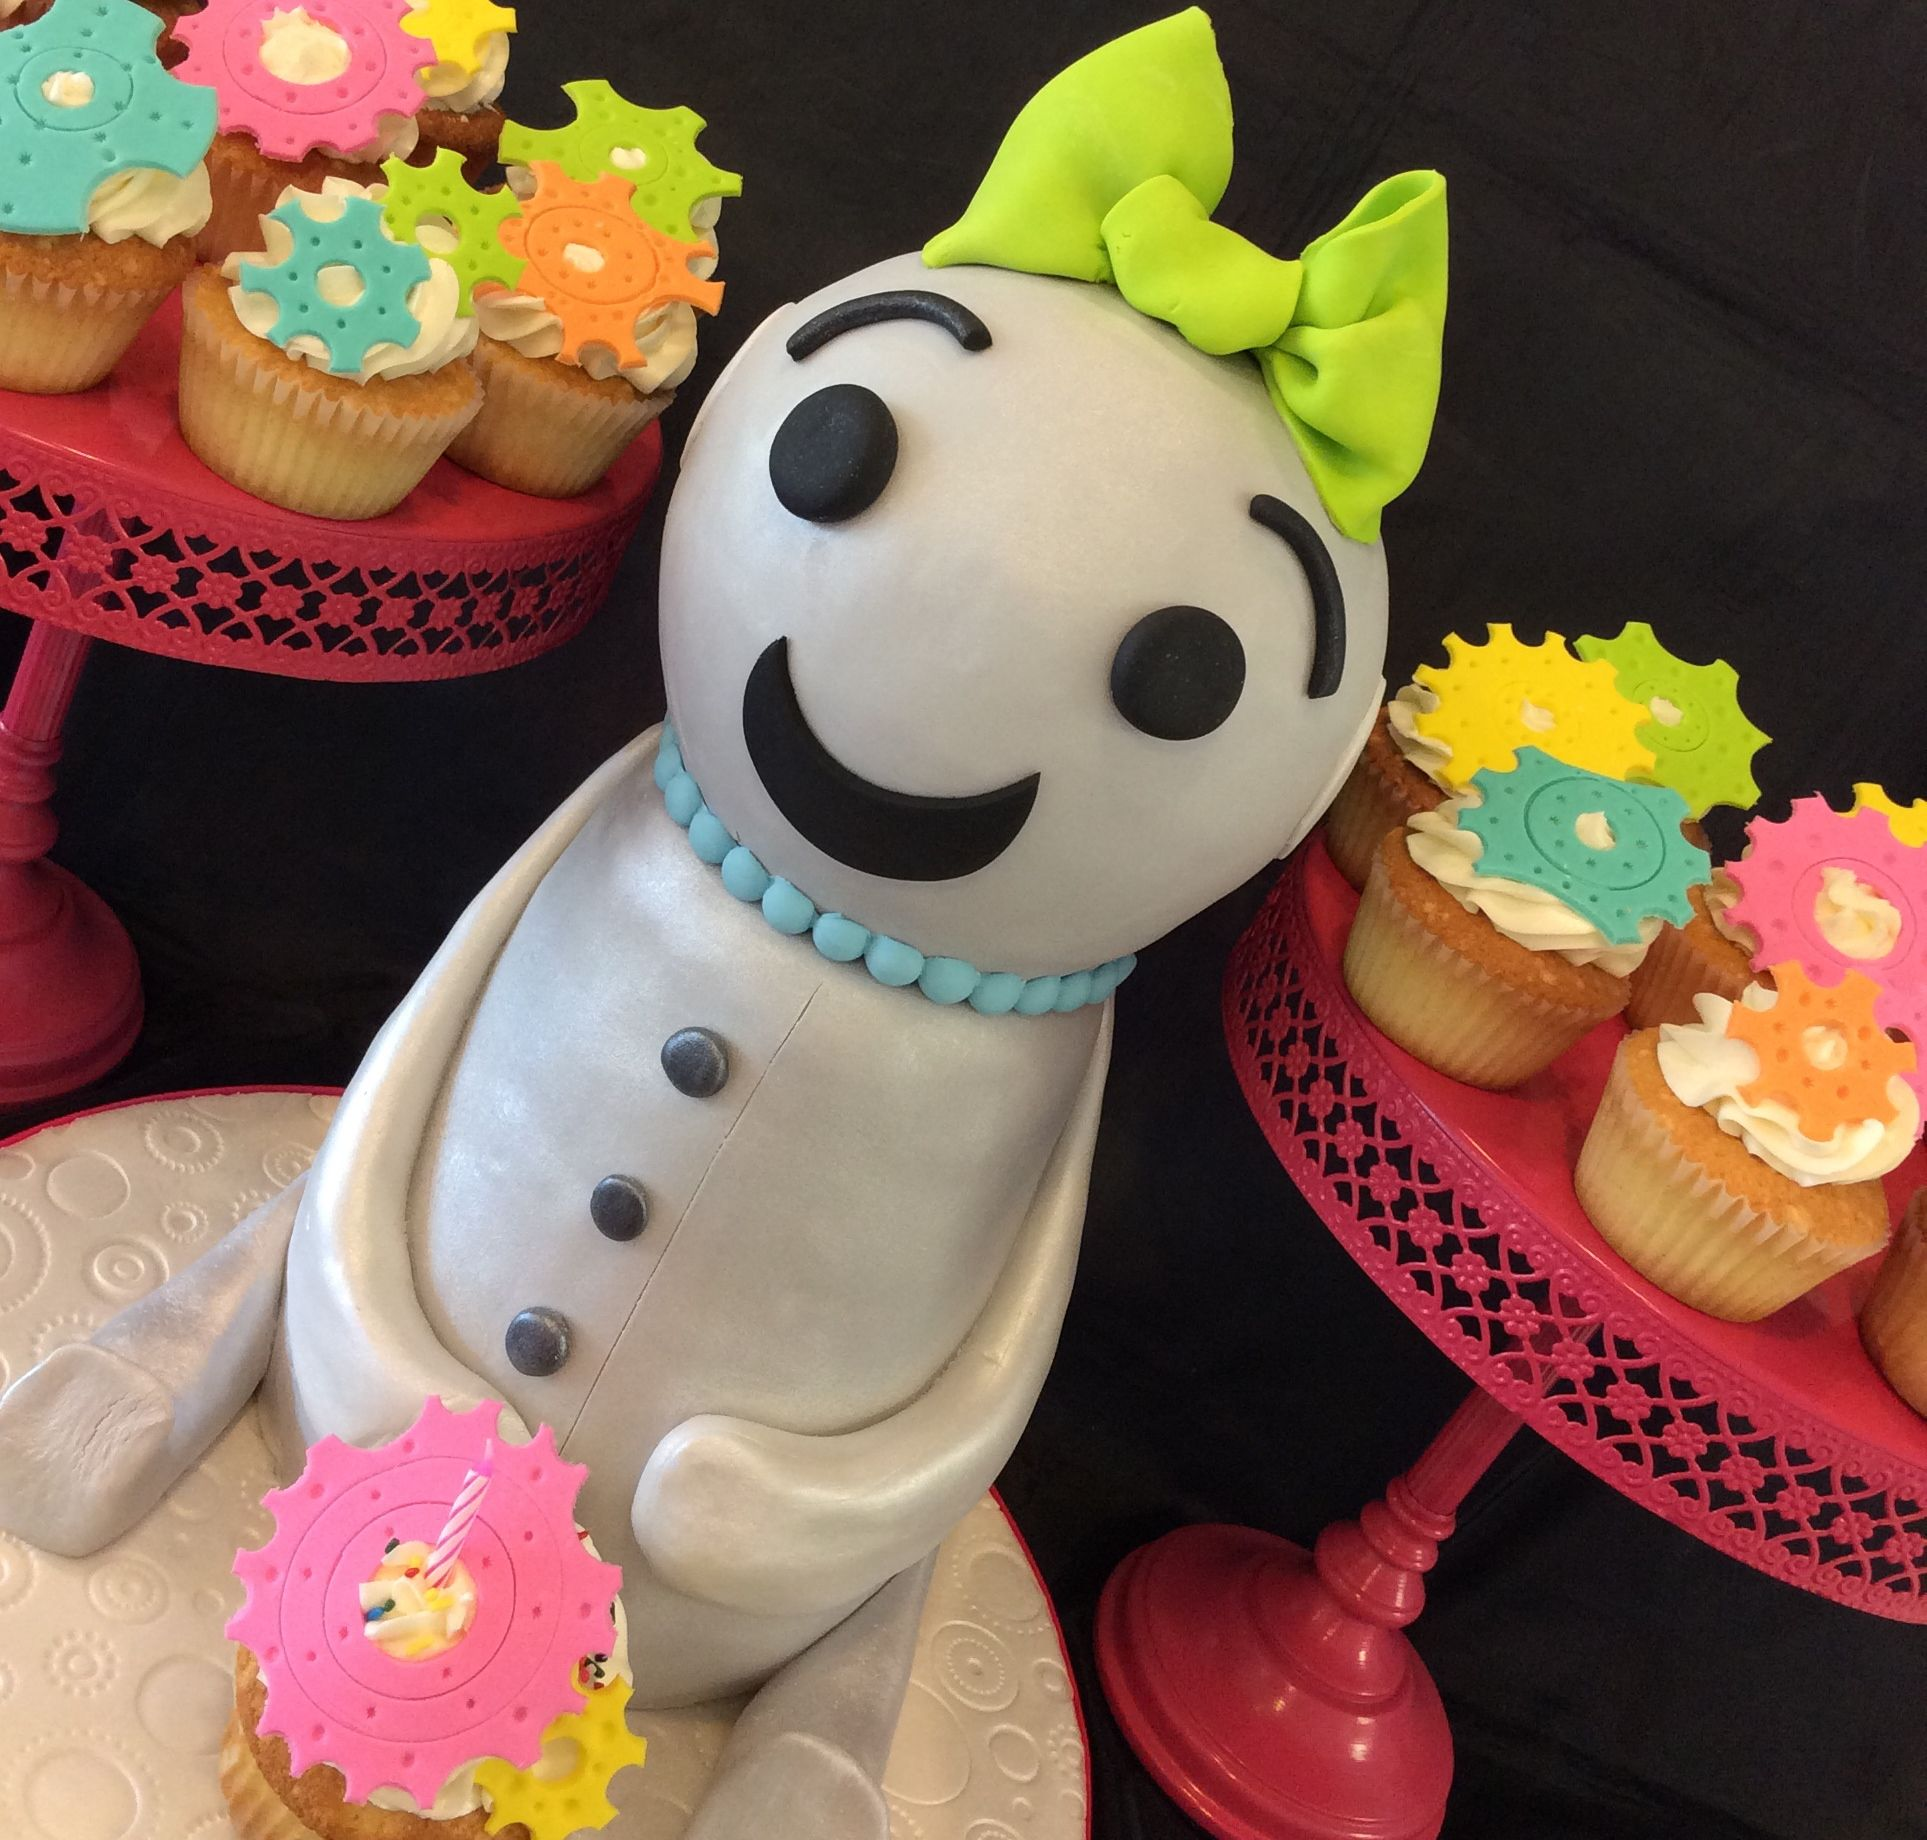 Sculpted robot including cupcakes with fondant gears